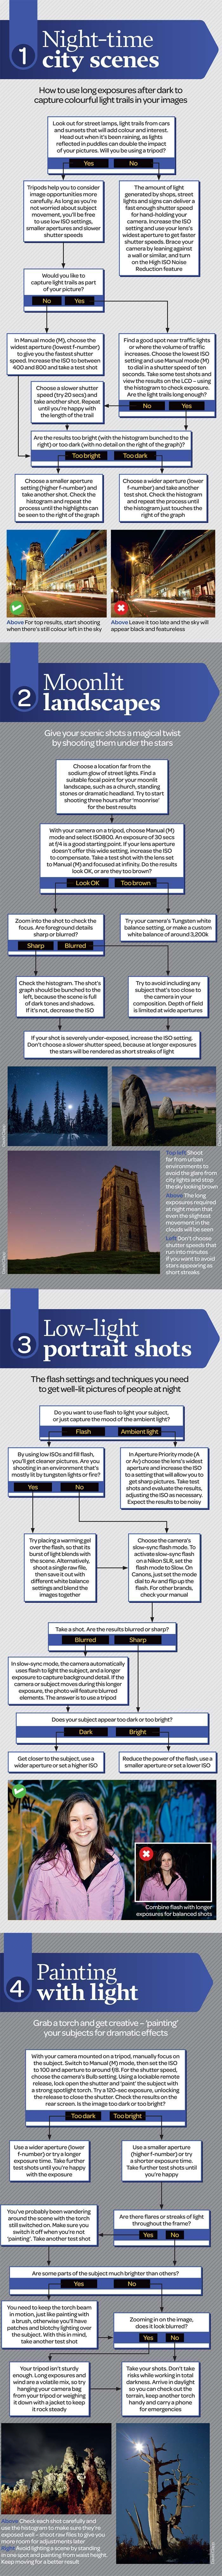 Photography tips | Free night photography cheat sheet: how to shoot popular low-light scenes | Digital Camera World #DigitalCameras